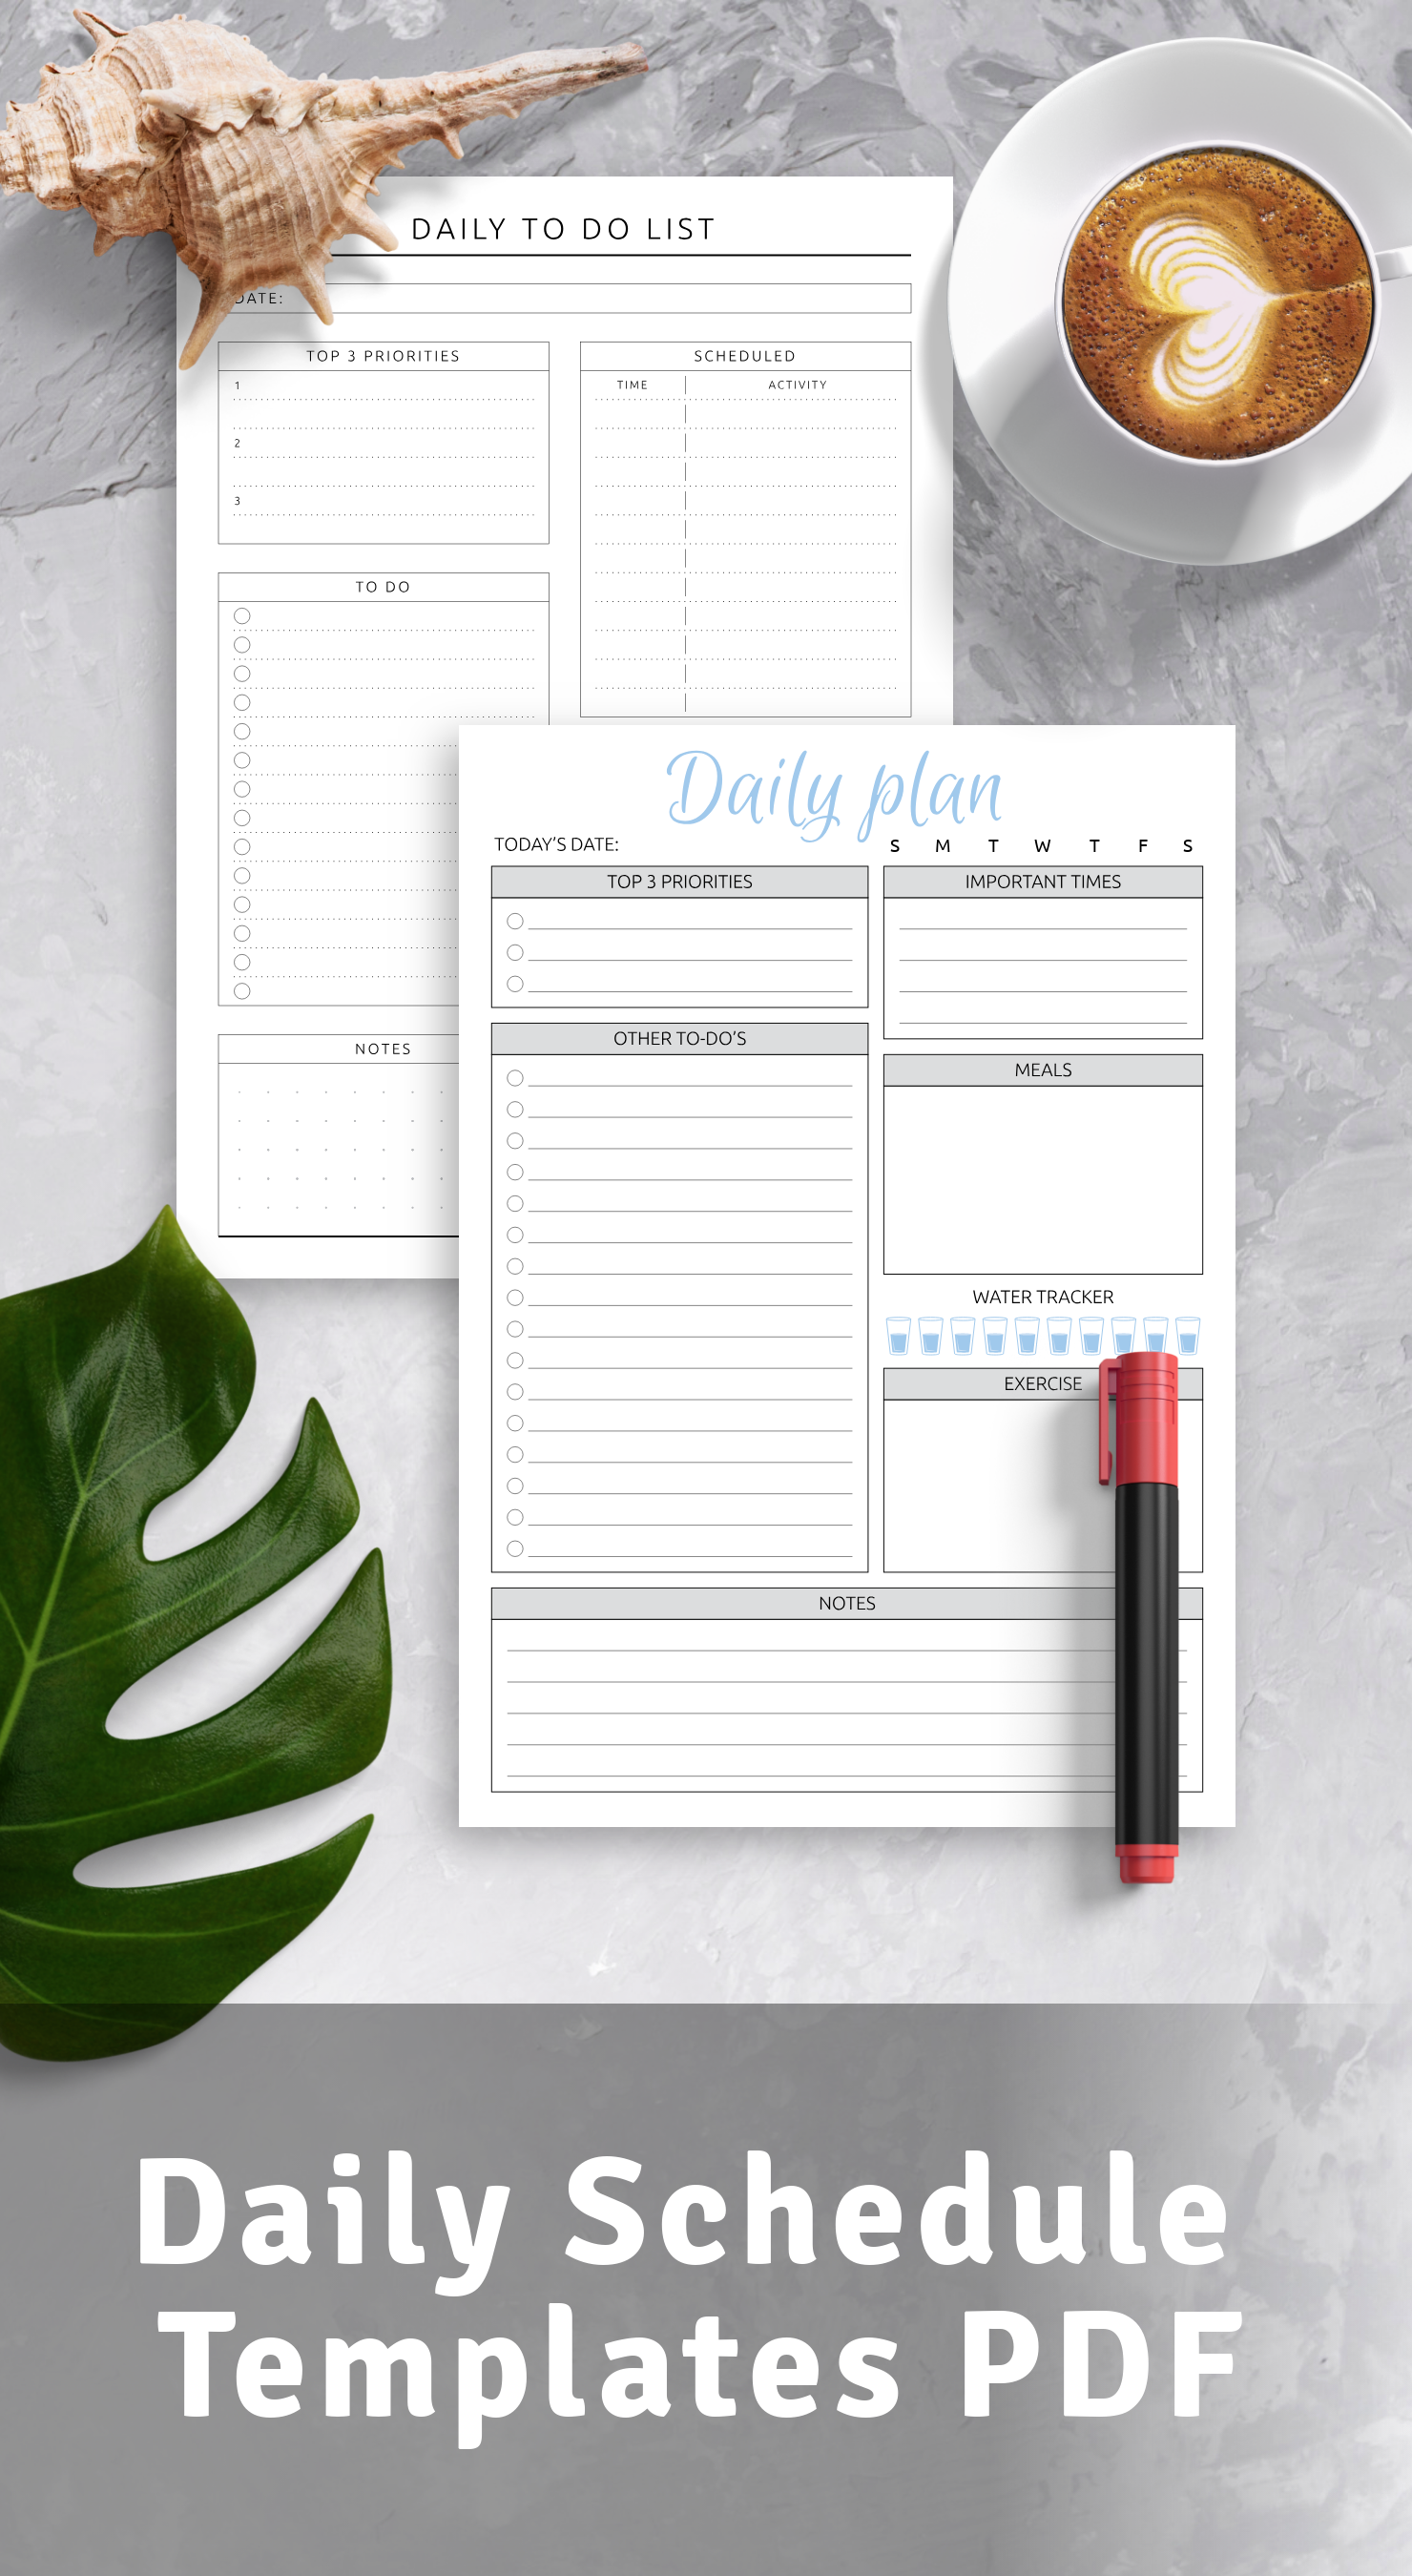 Blank Daily Schedule Templates PDF